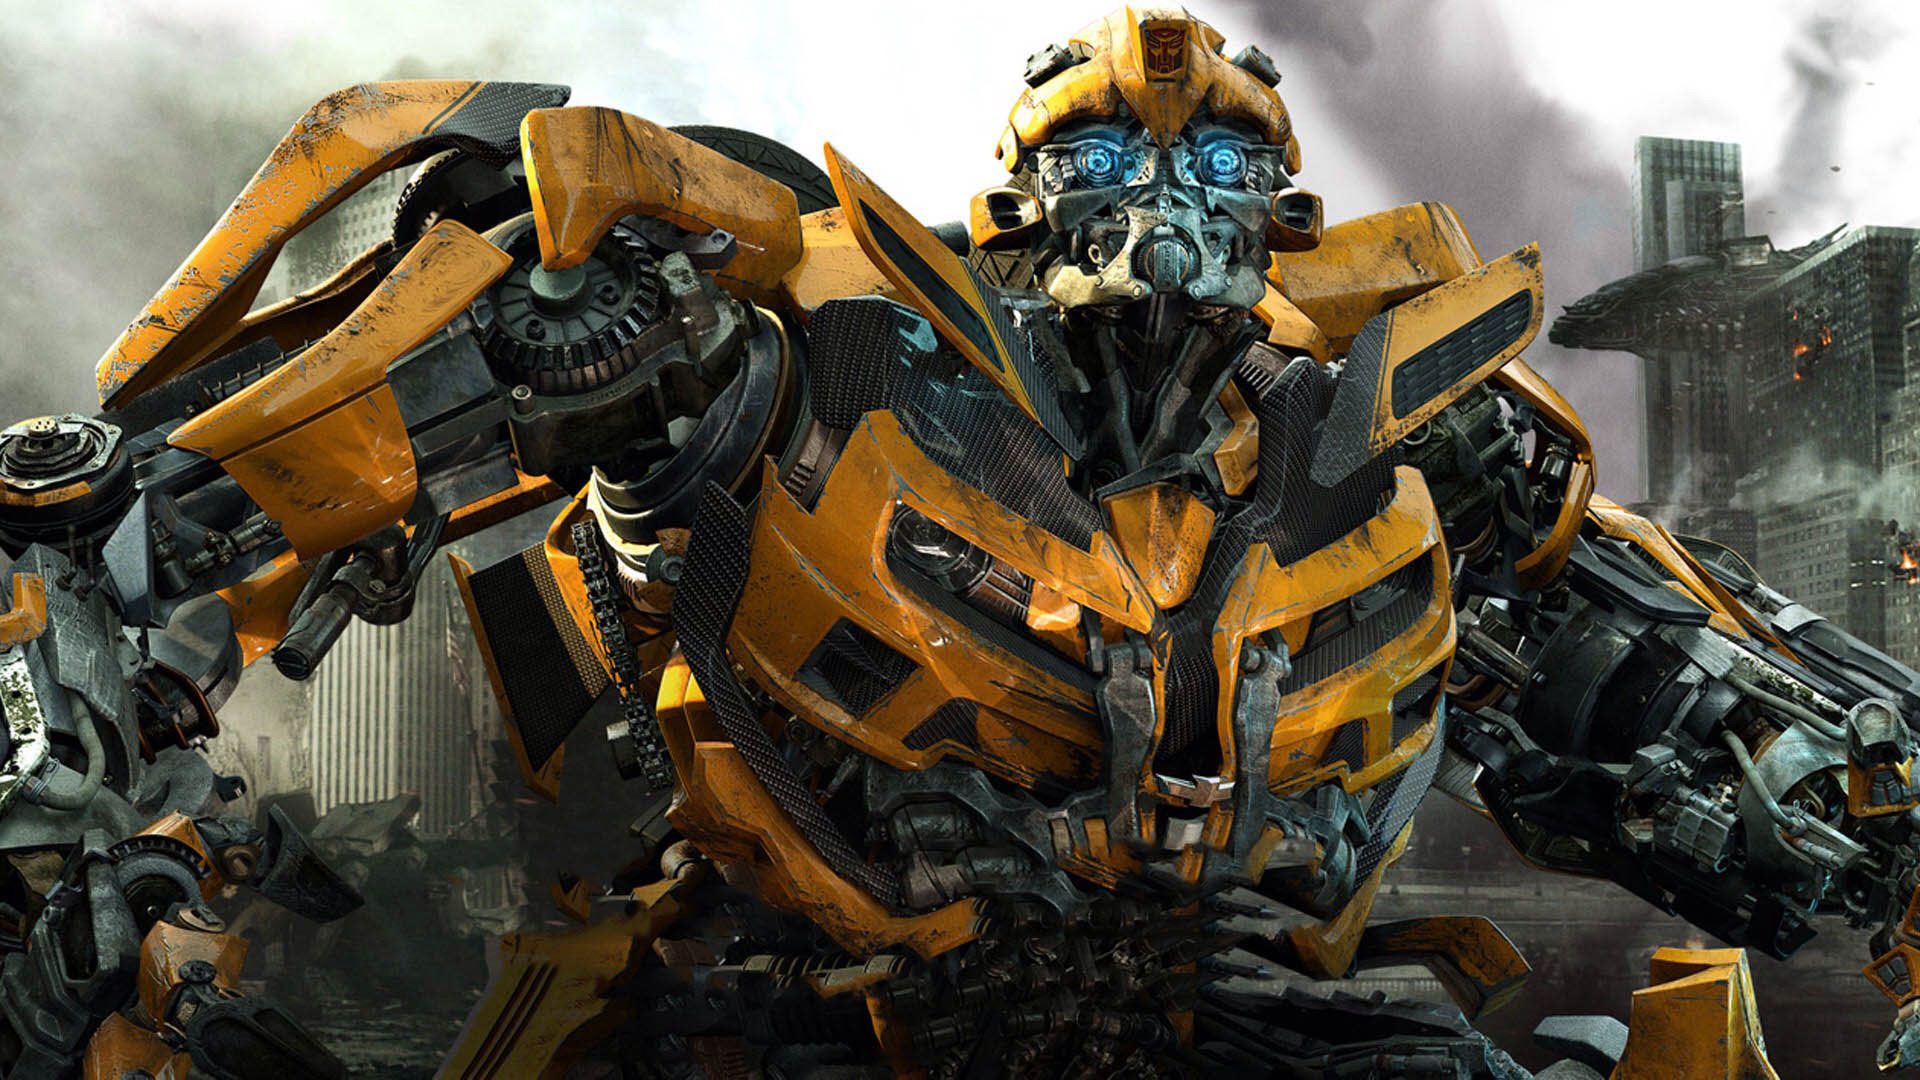 1920x1080 Transformers: Age Of Extinction - Bumblebee -  - Full HD .